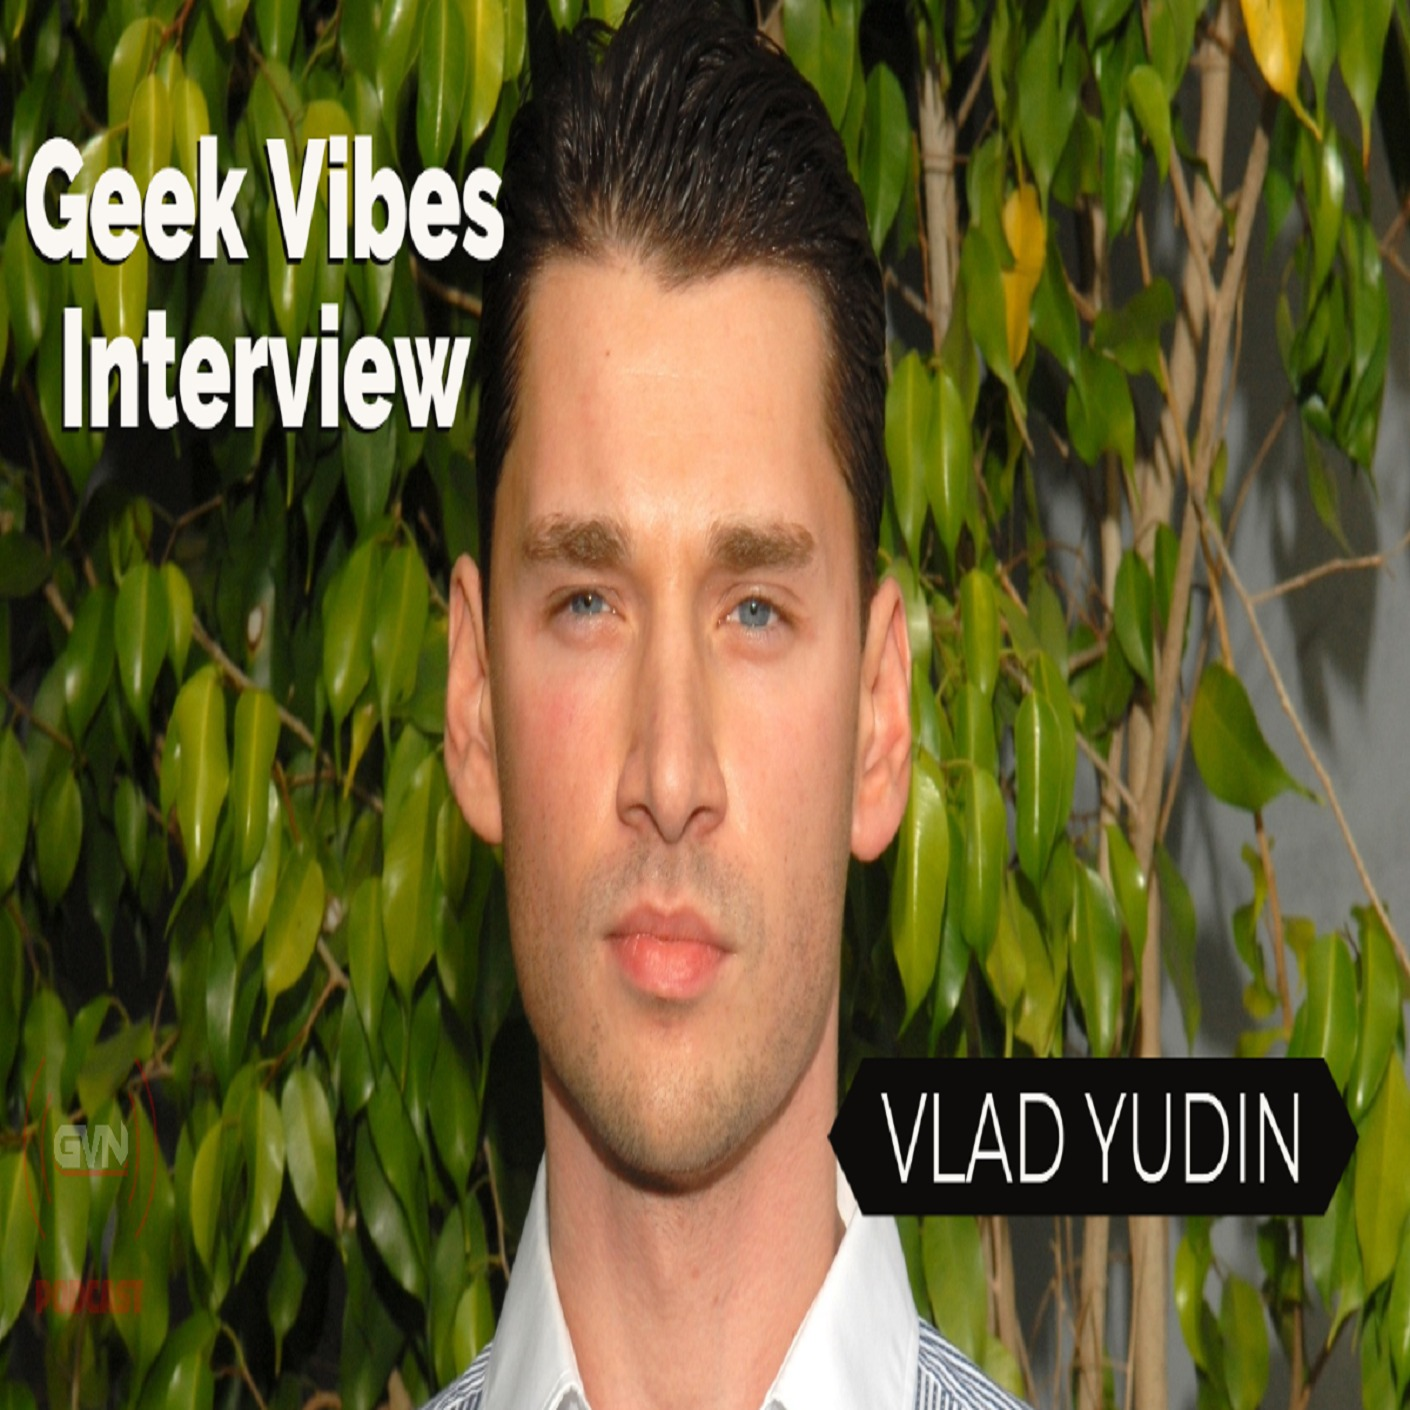 Geek Vibes Interview w/ Vlad Yudin